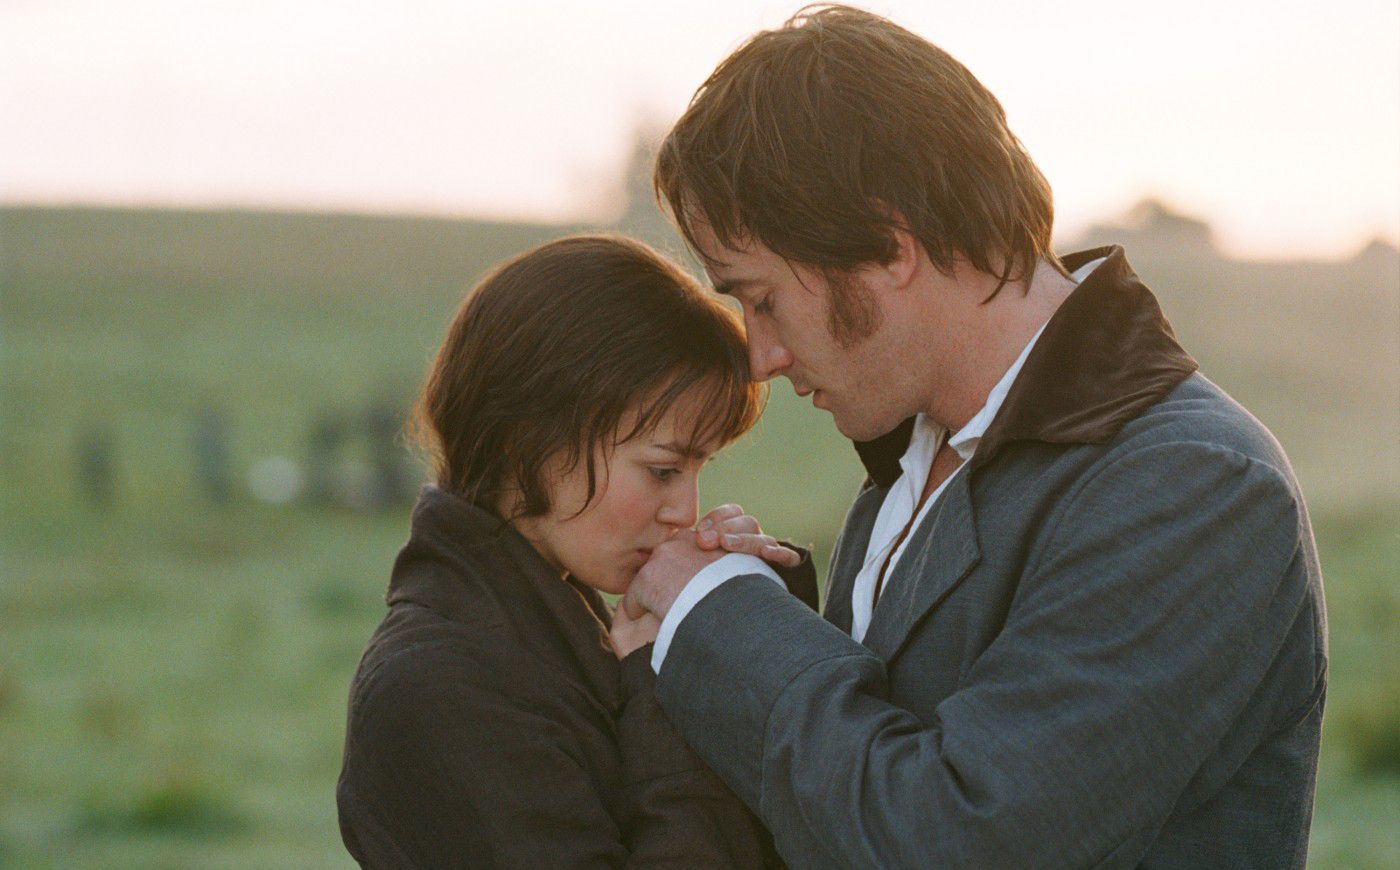 pride prejudice film review slant magazine